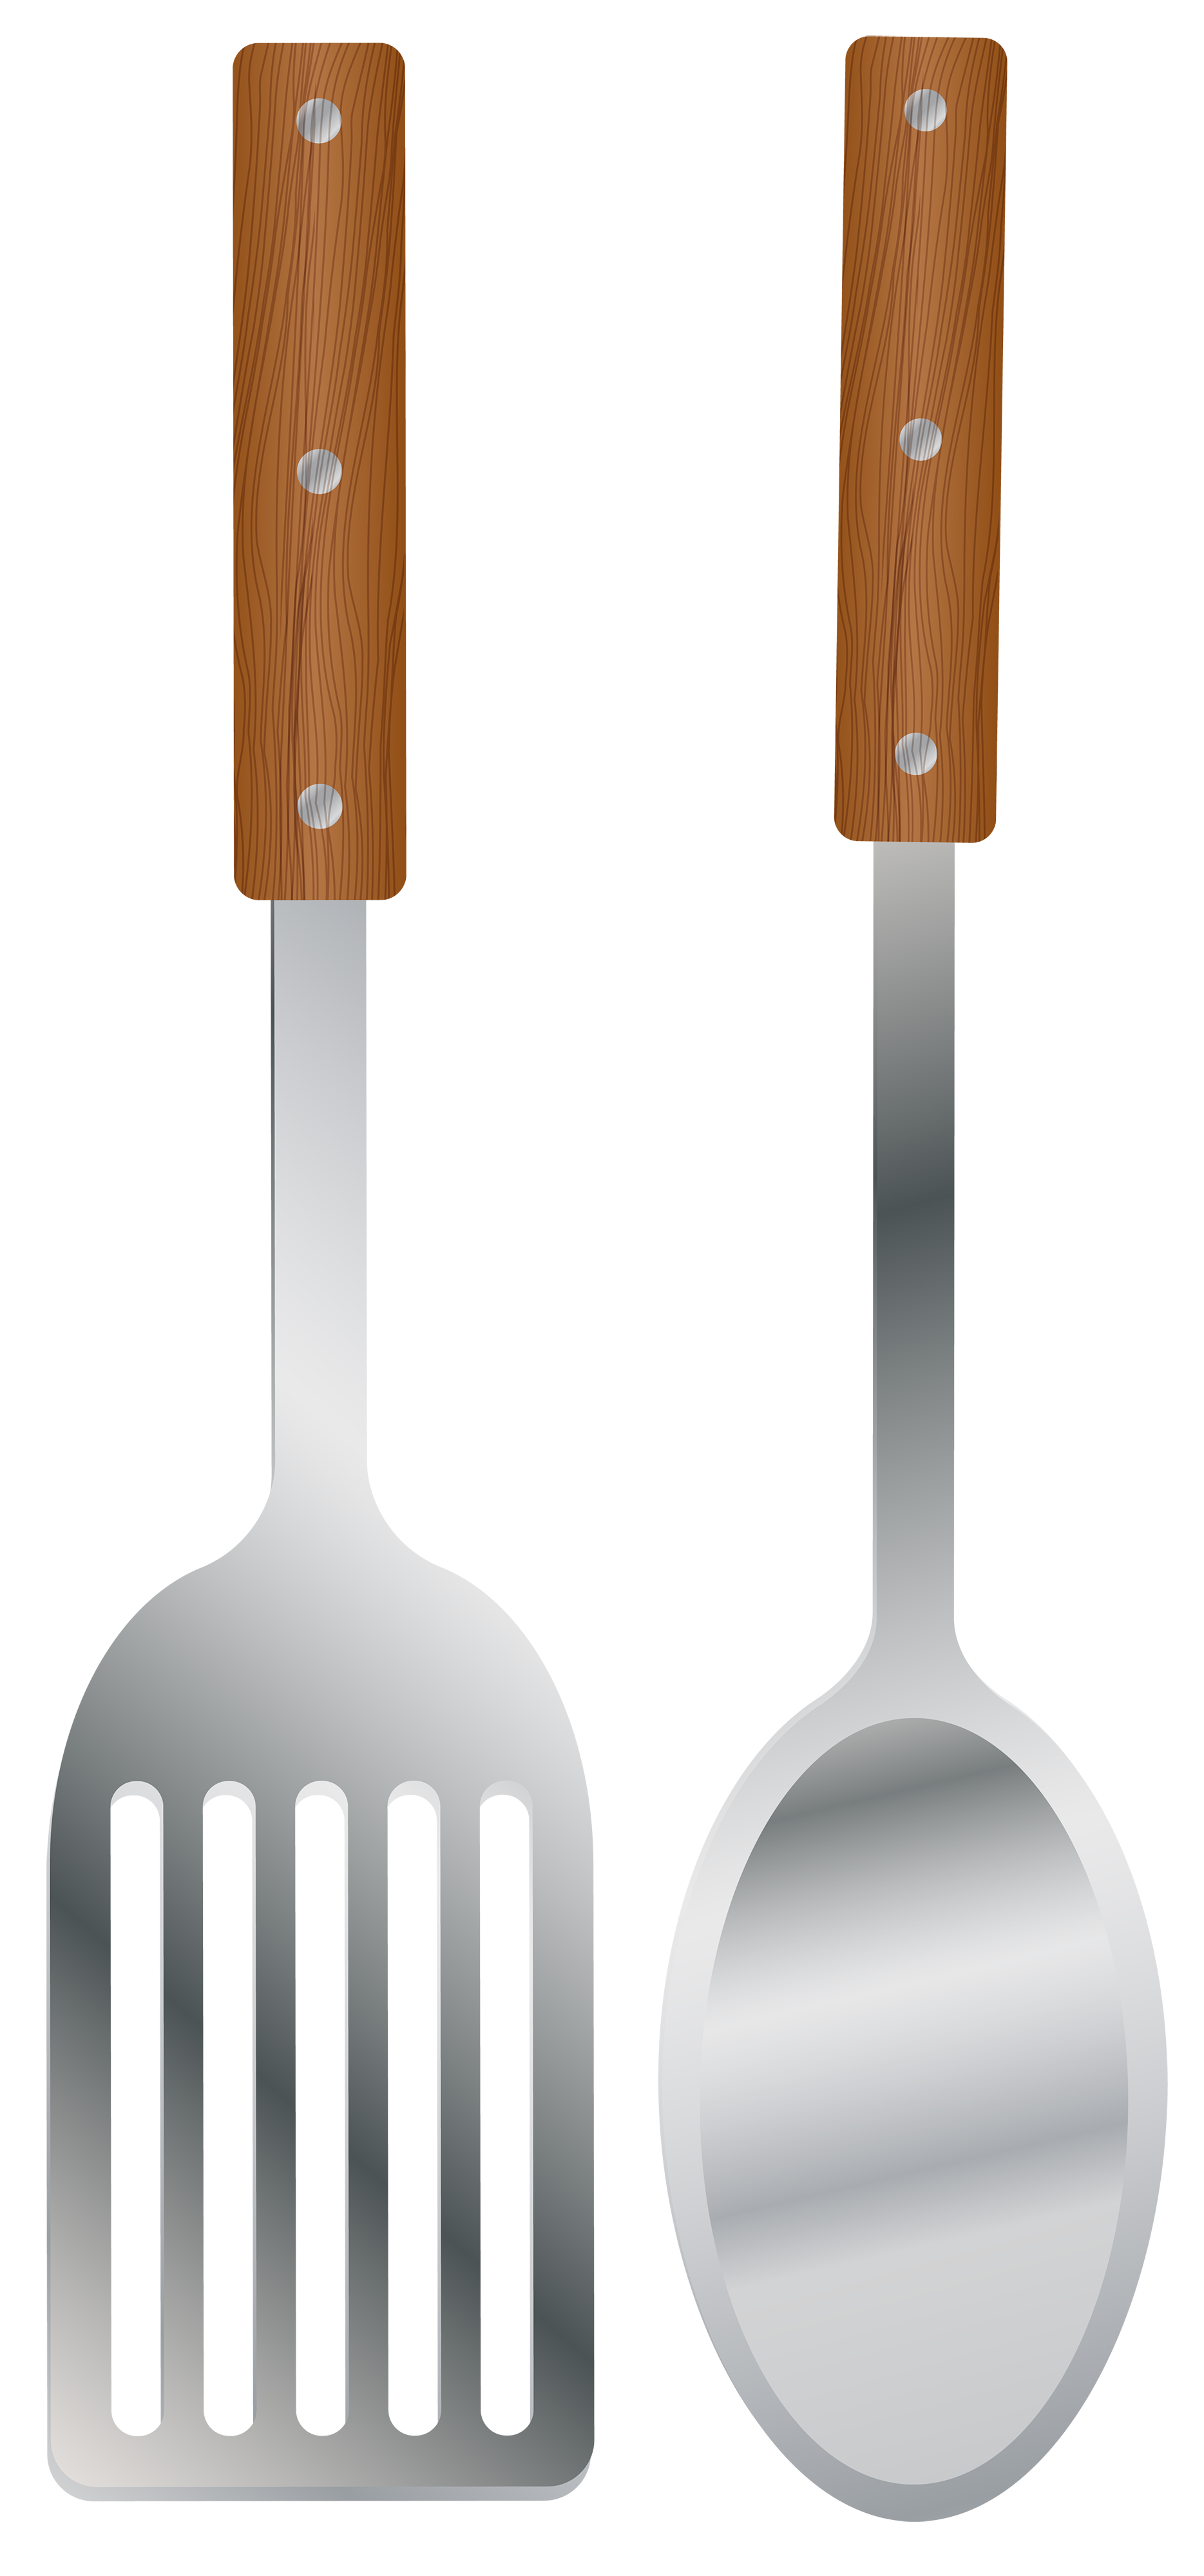 Spatula clipart kitchen spatula. Spoon and png best